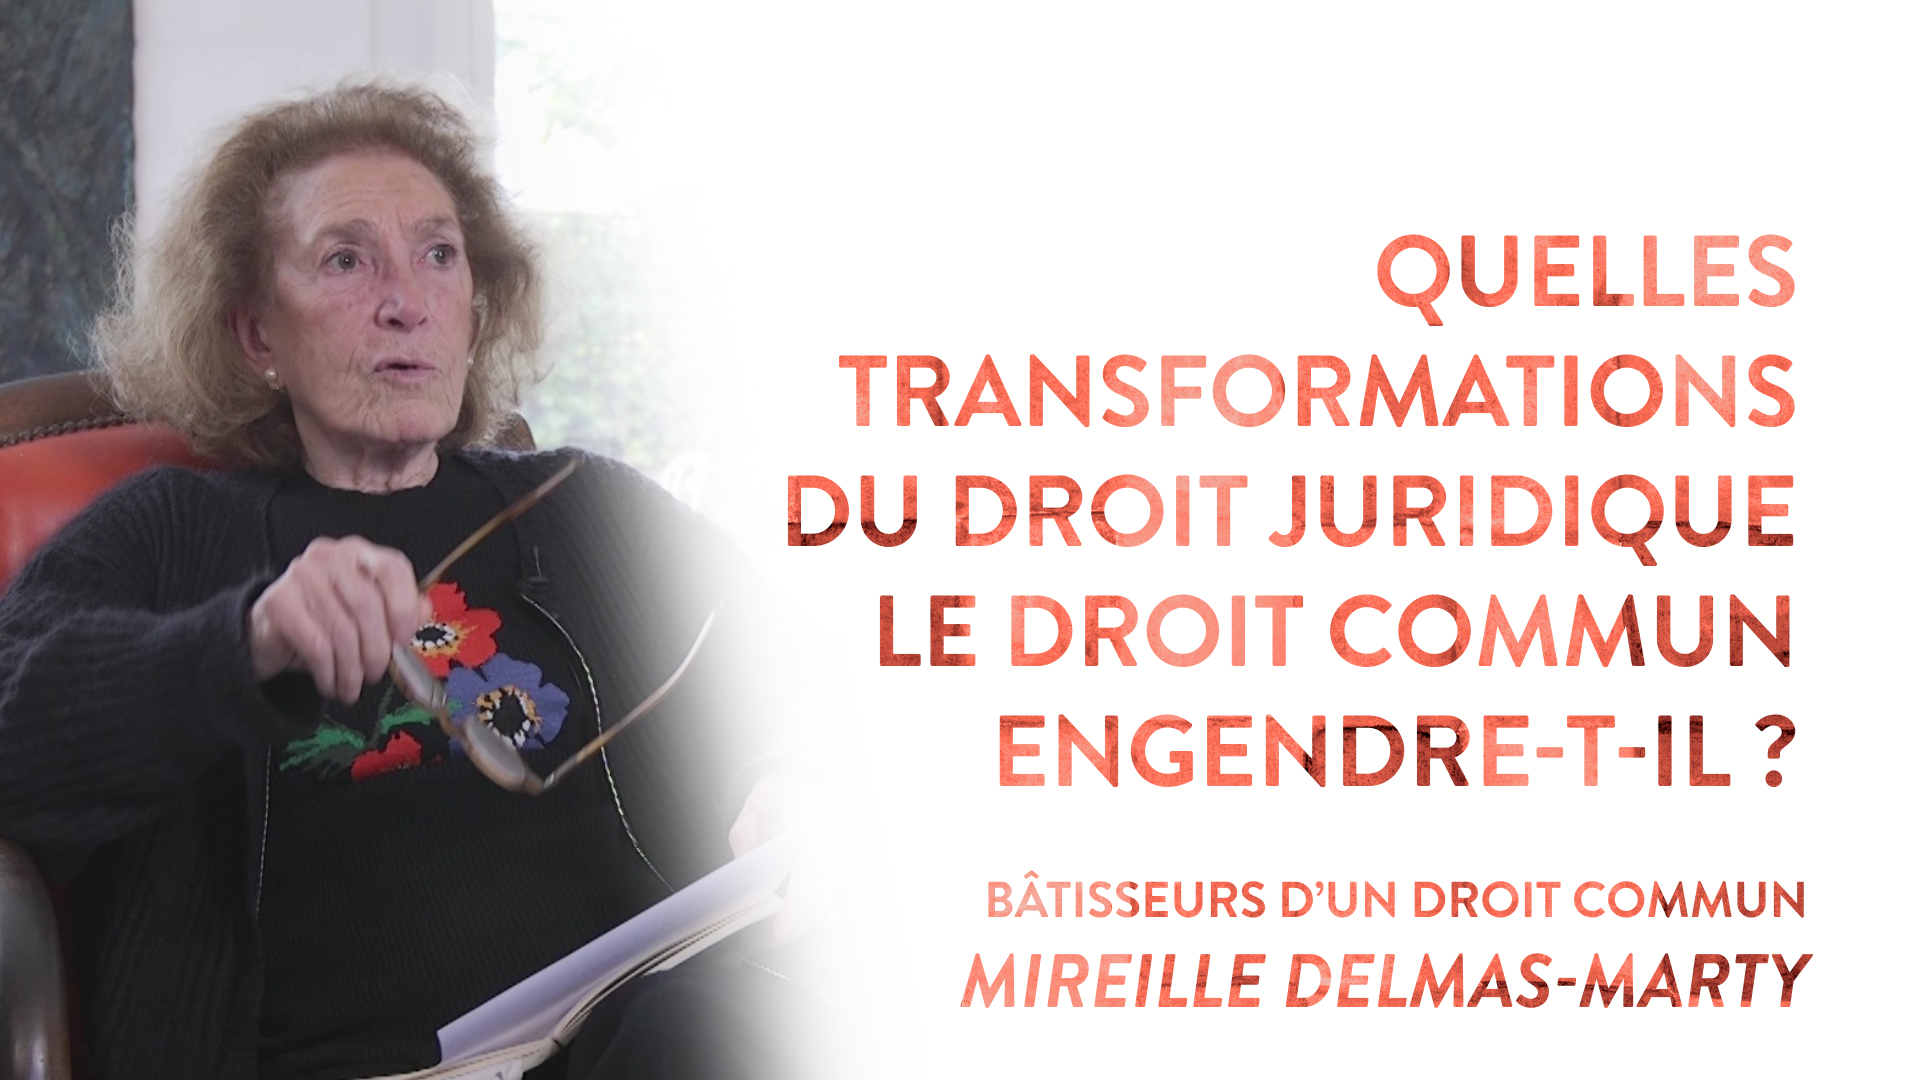 Mireille Delmas-Marty question 5